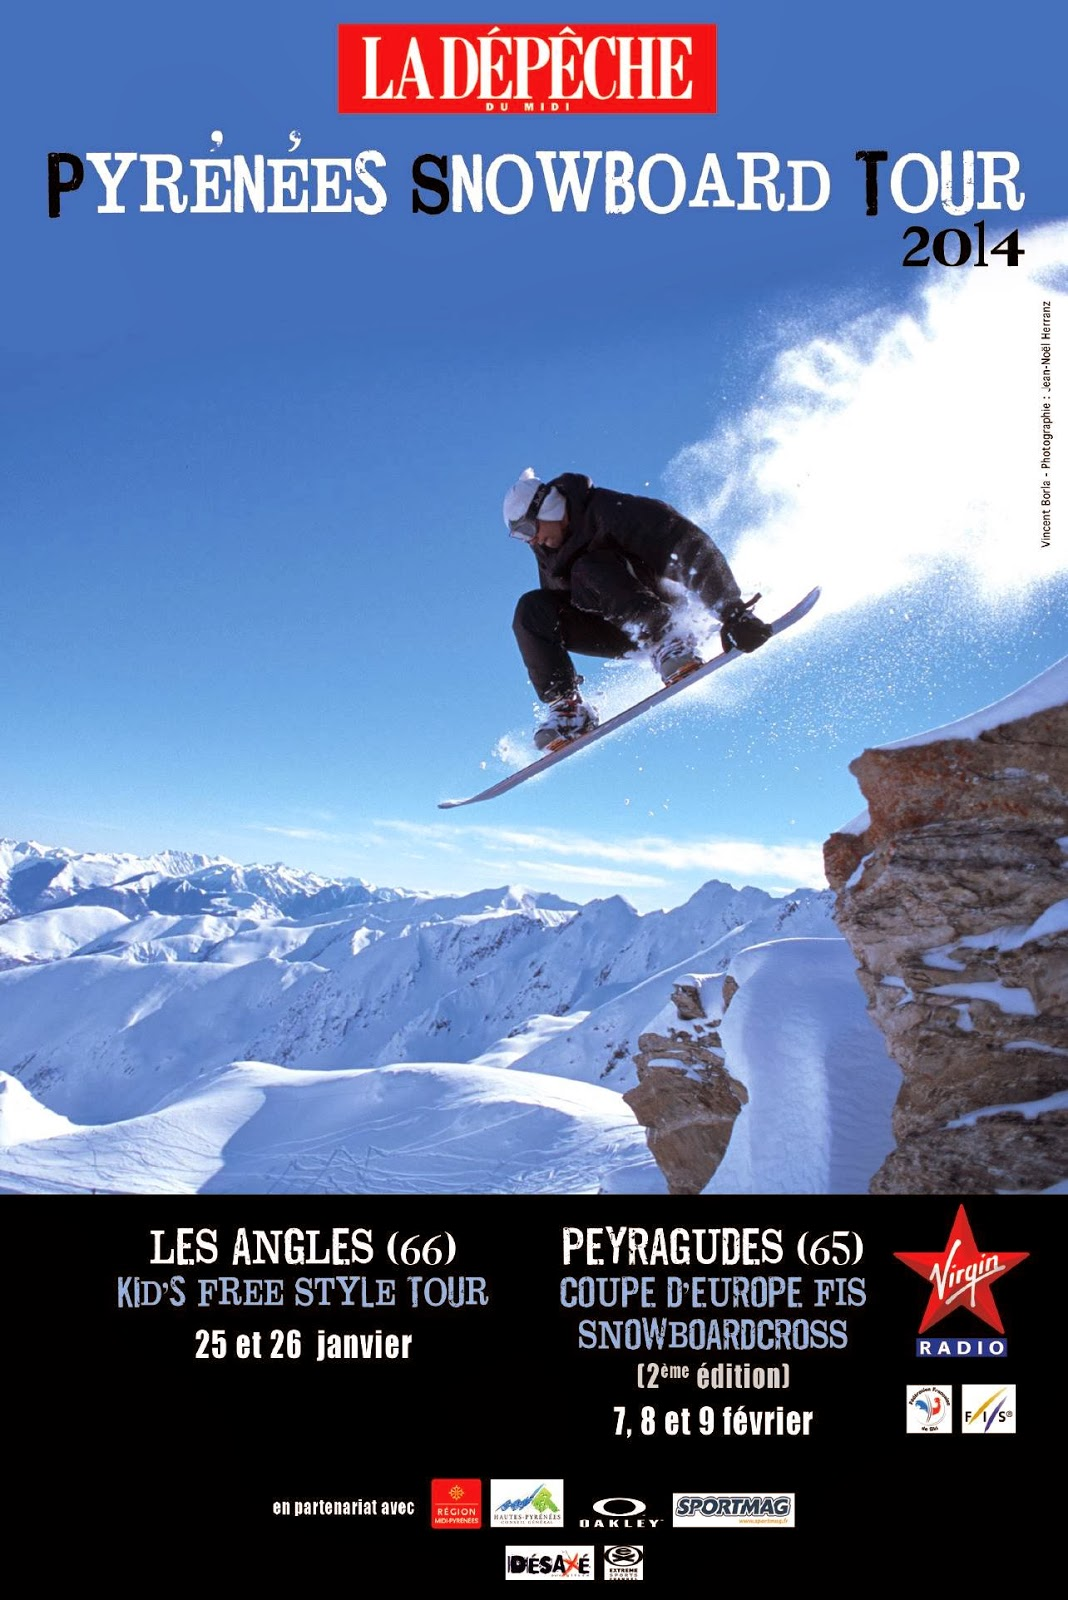 Coupes d'Europe de Snowboardcross Peyragudes